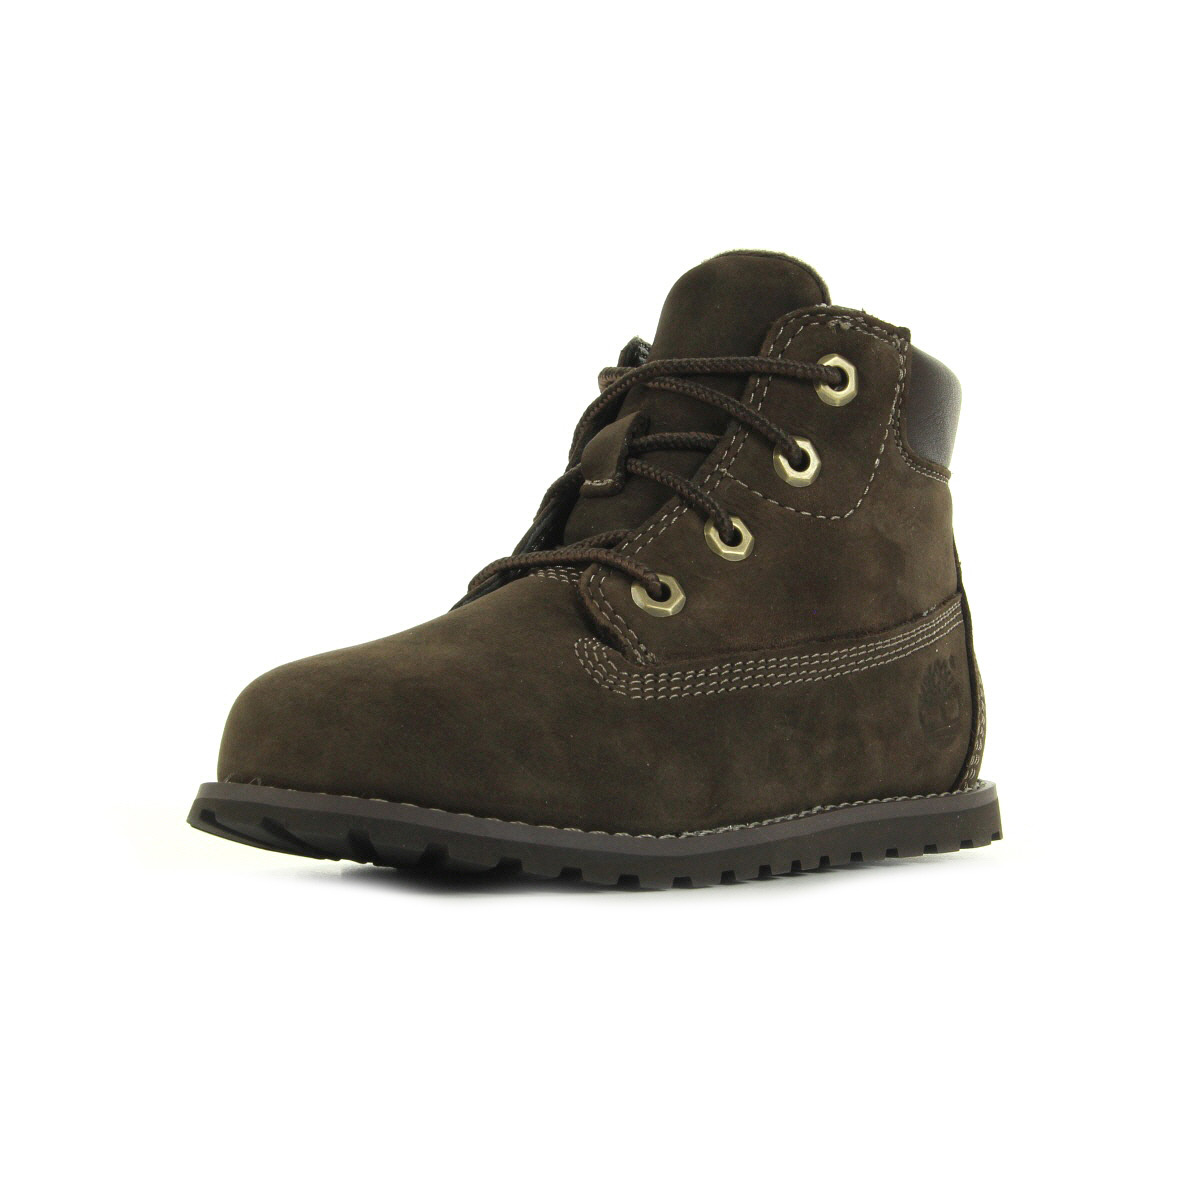 Timberland Boots POKEY PINE 6IN BOOT WHIT SIDE Marron EU4Tw6QB9